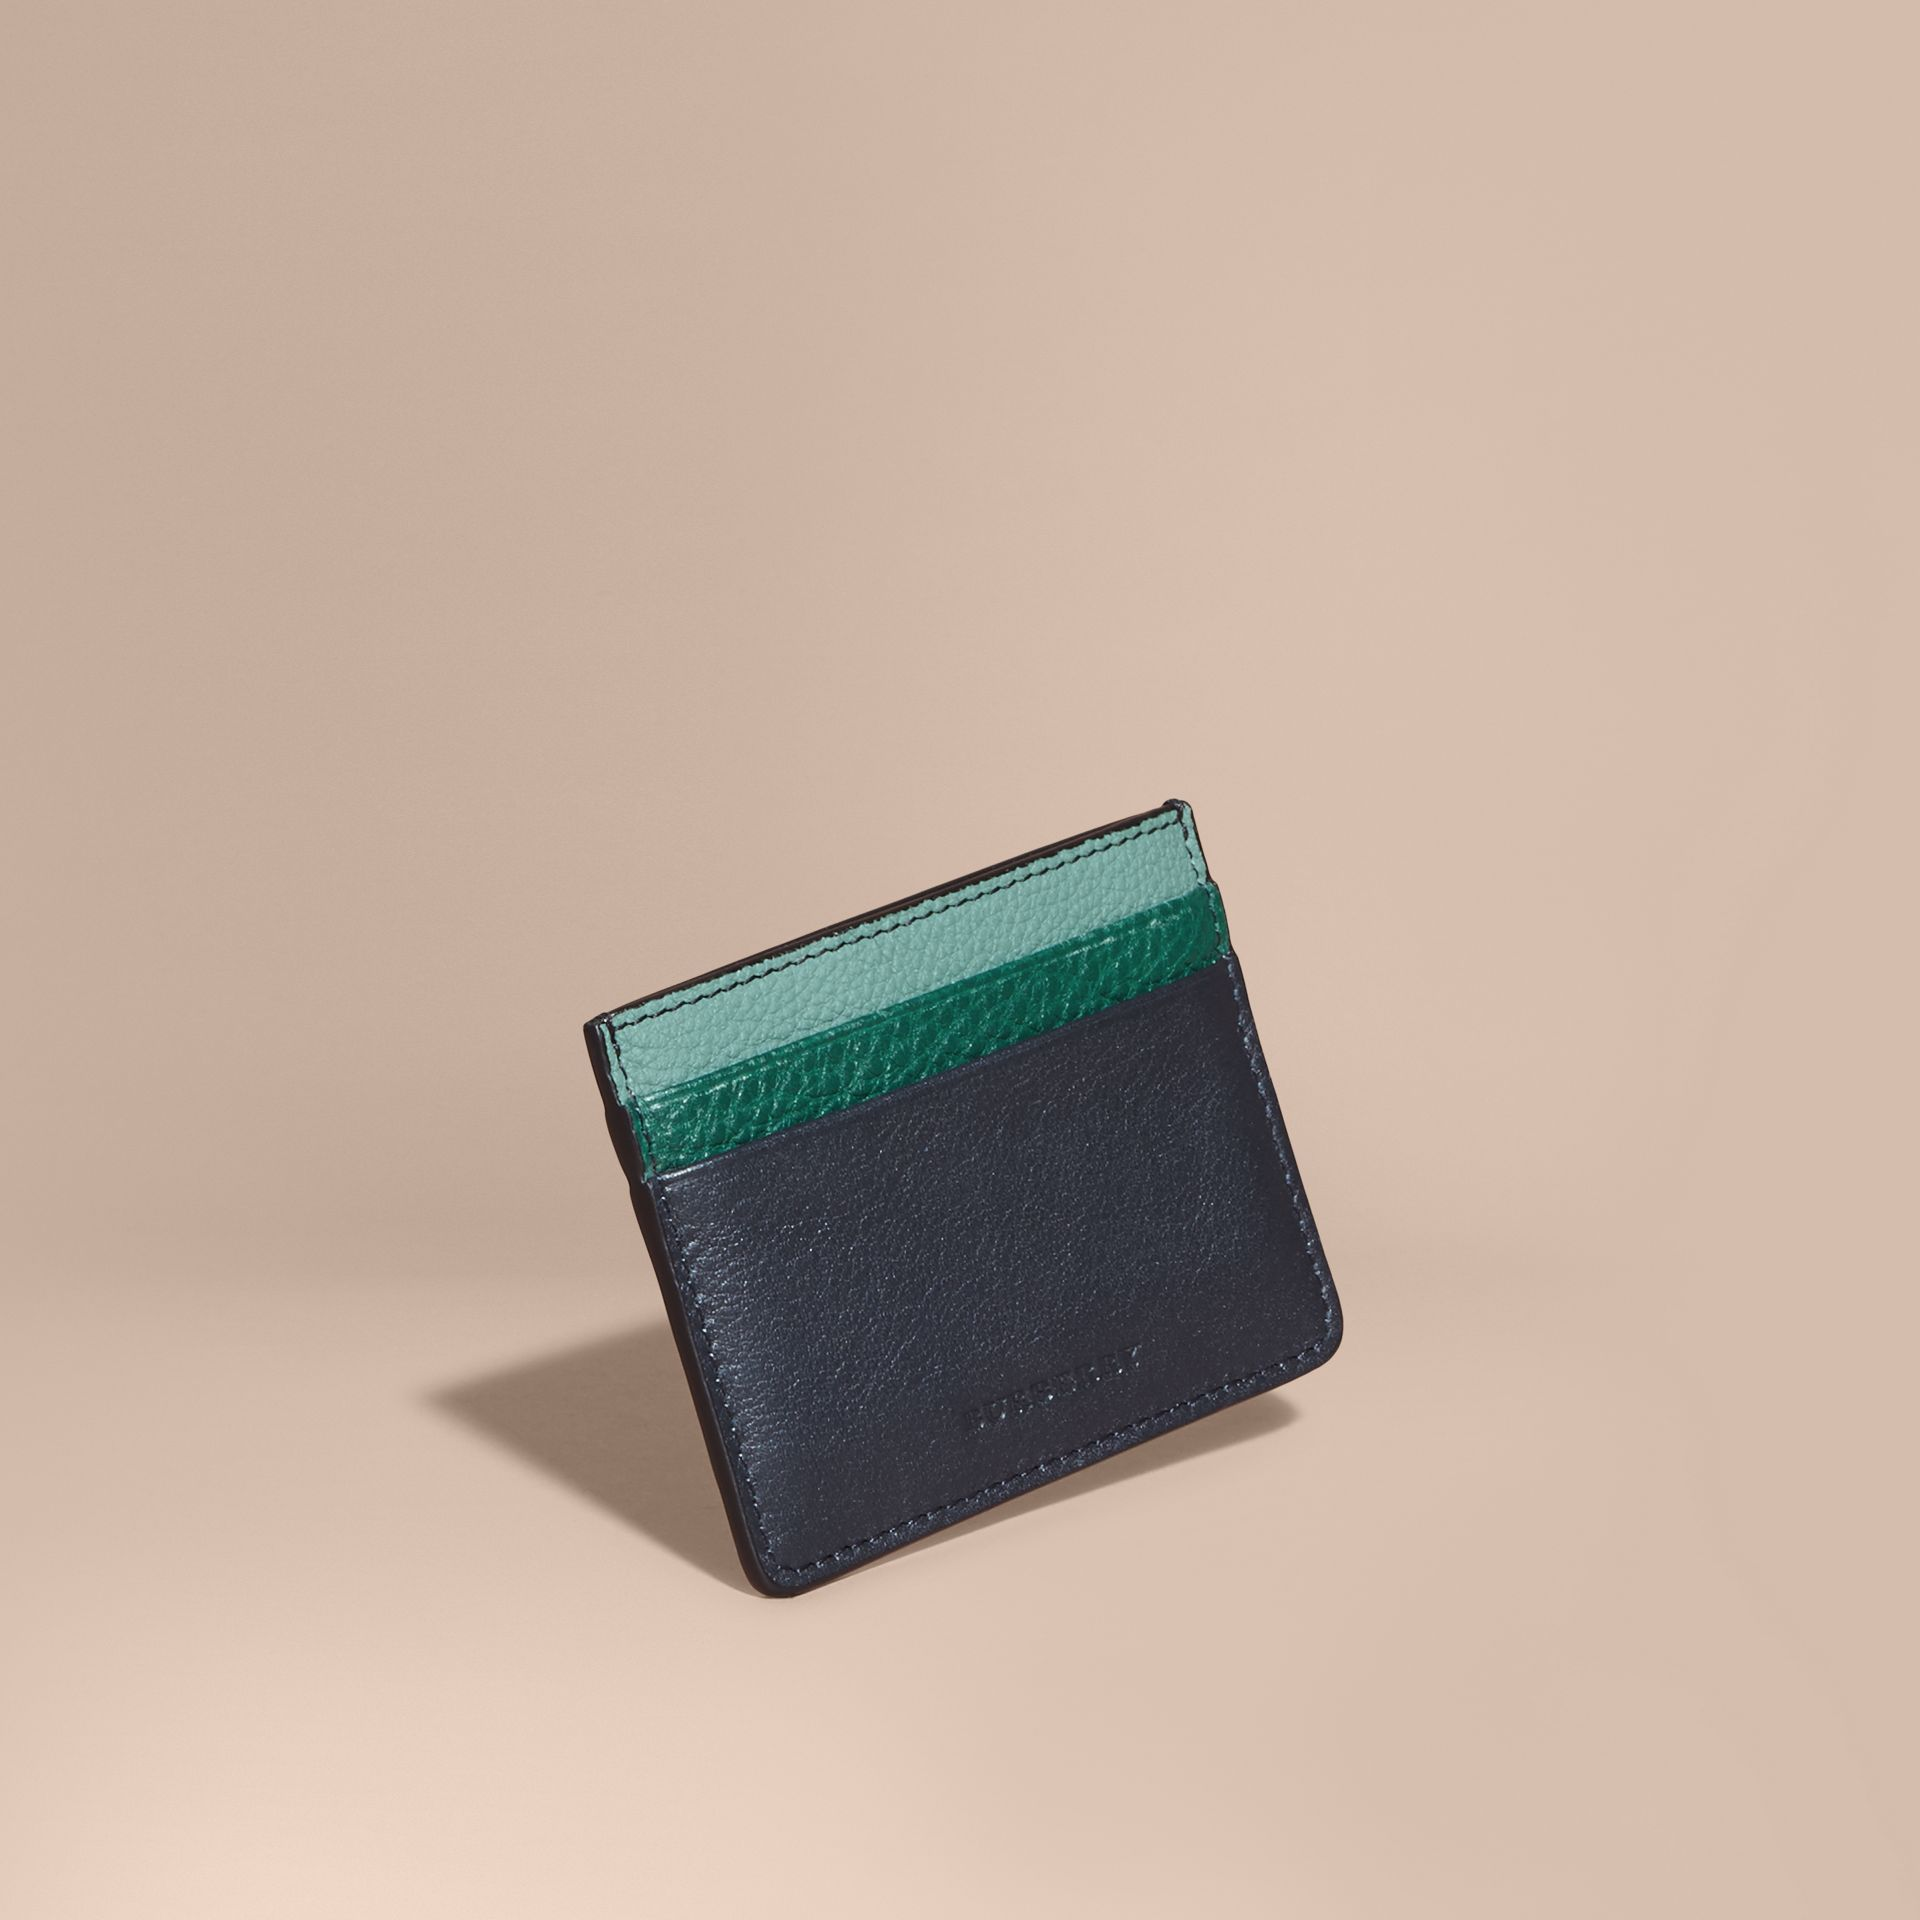 Colour Block Leather Card Case in Blue Carbon - gallery image 1